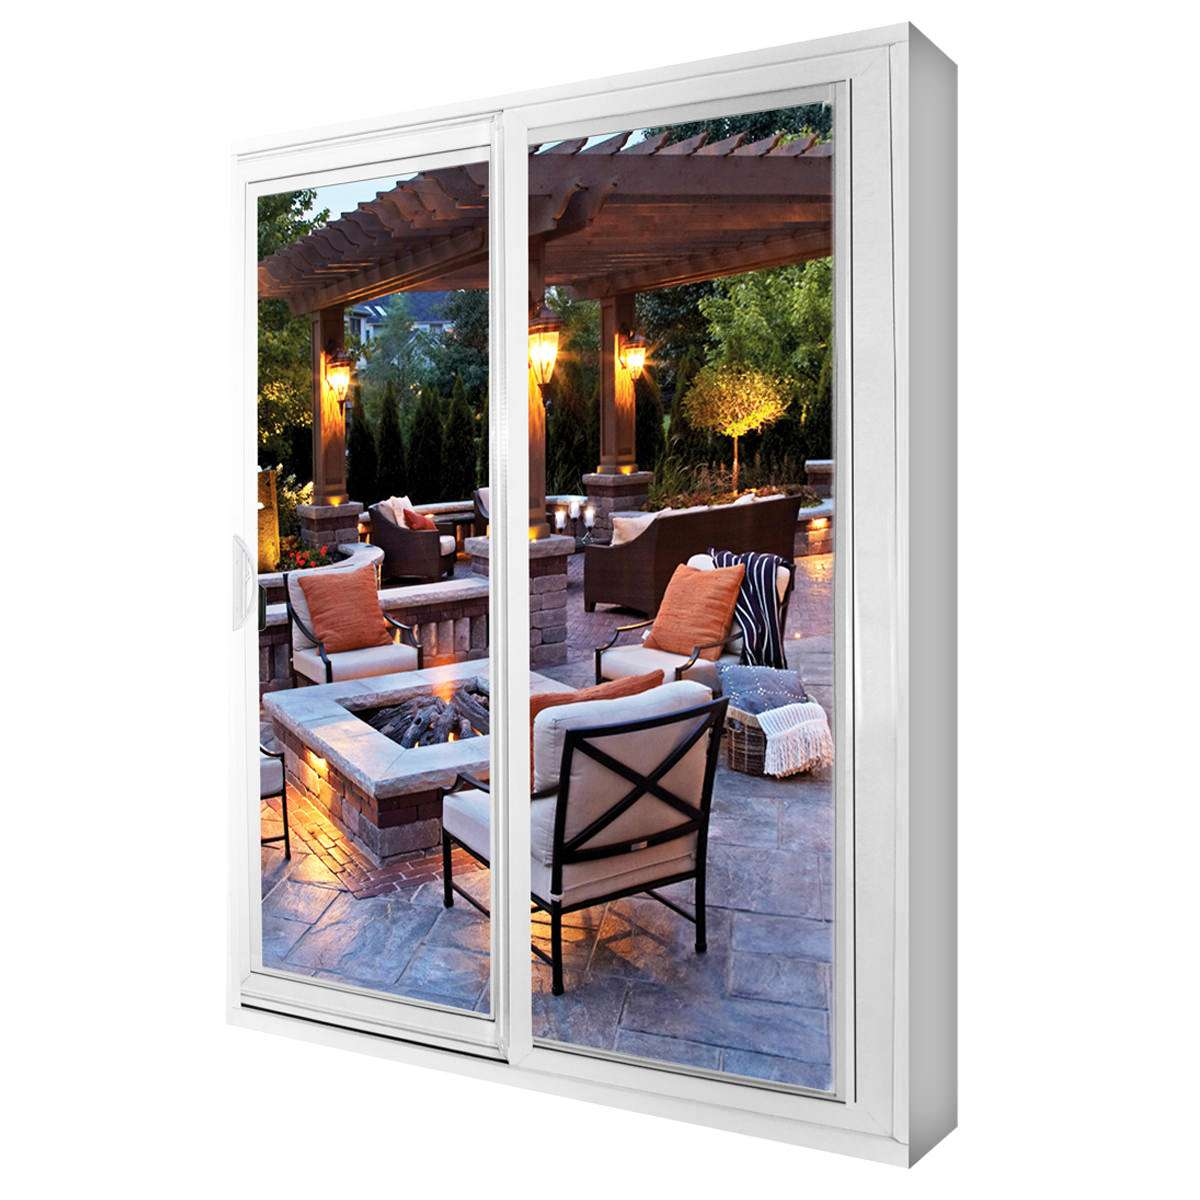 A white patio door with a backyard patio set in the background.